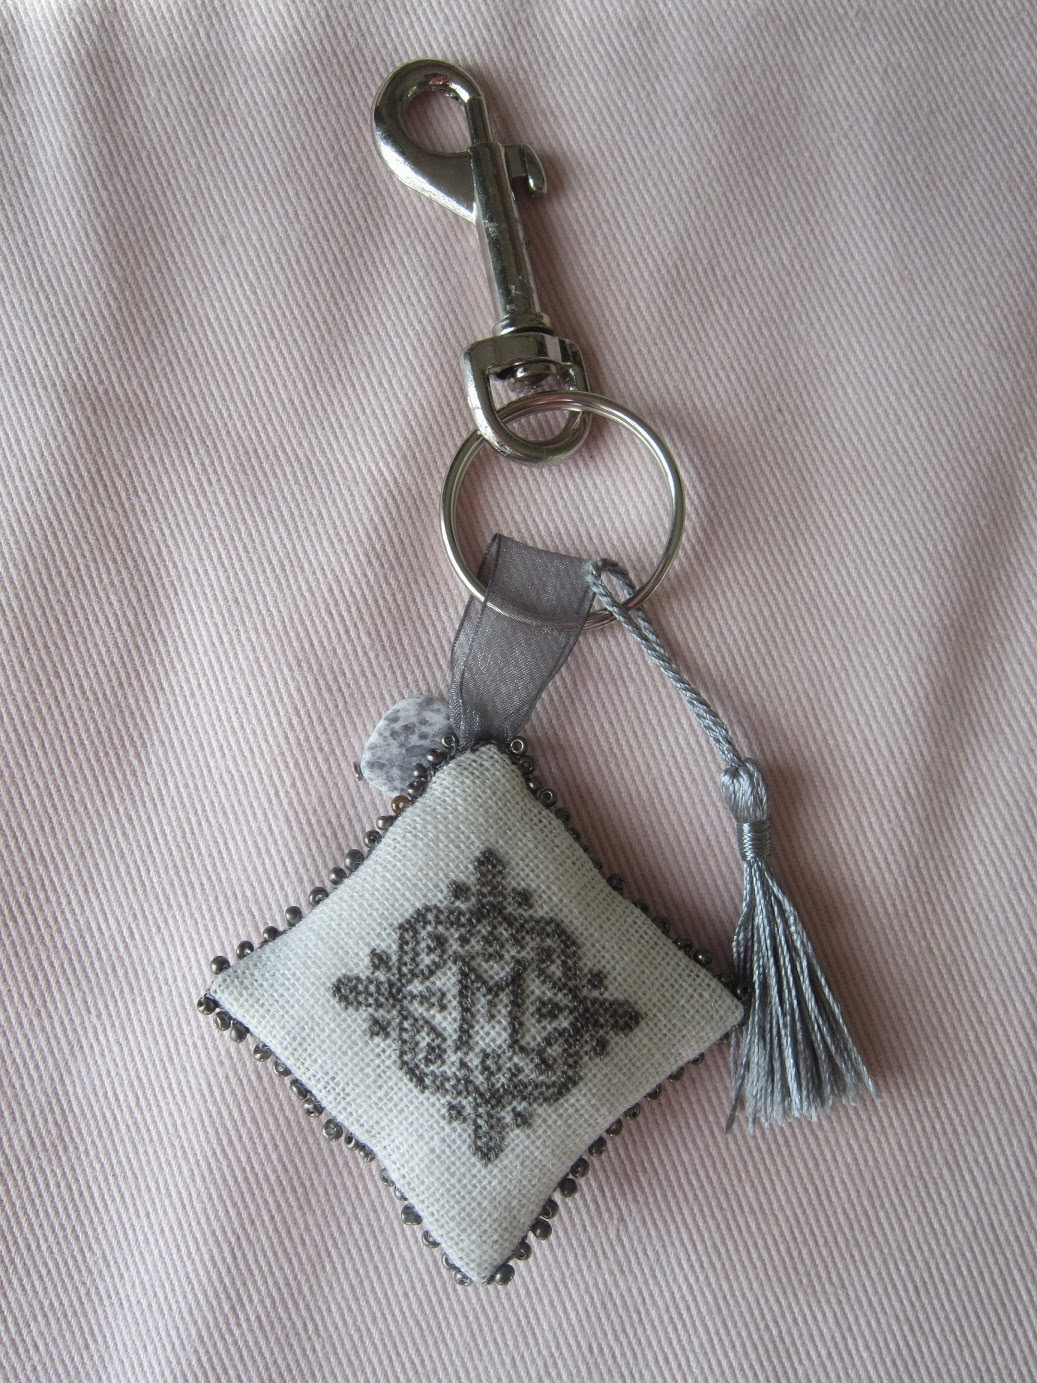 llavero, porte-clefs, punto cruz, point croix, couture, costura, stitching, cross stitch, key holder